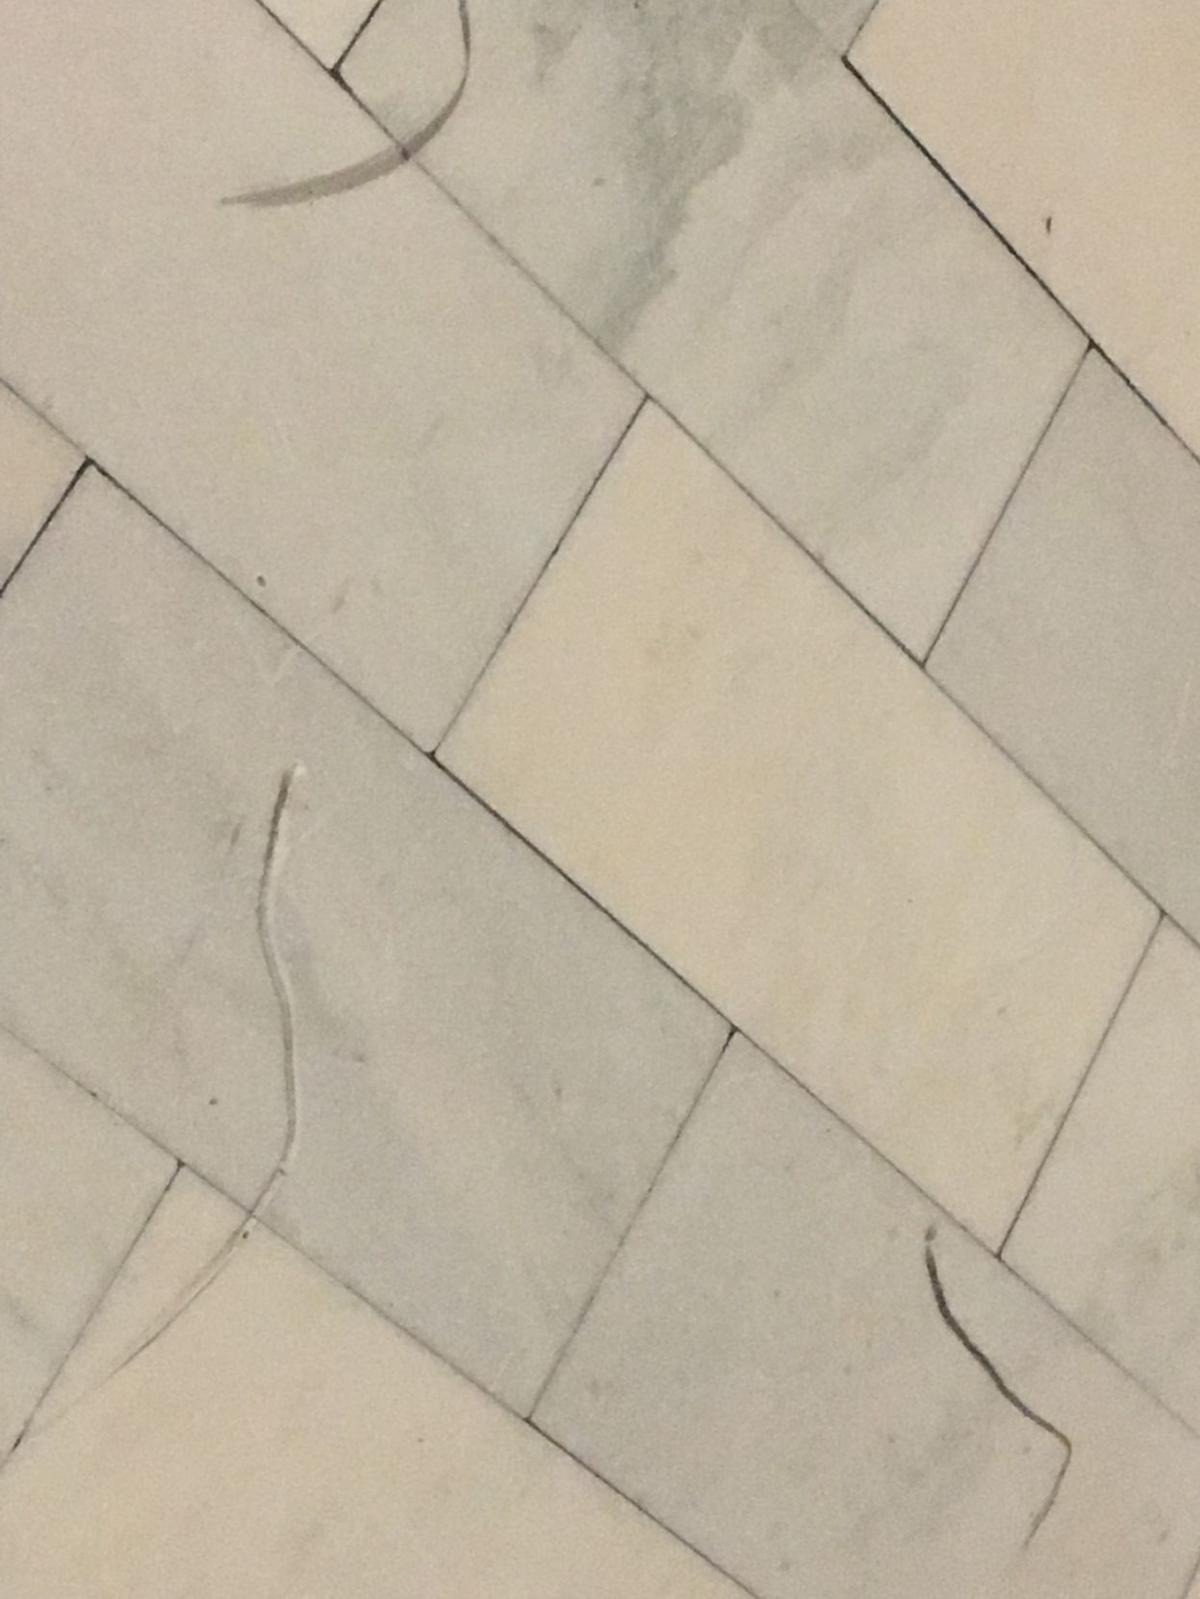 Tiles damaged in weekend vandalism at the state Capitol